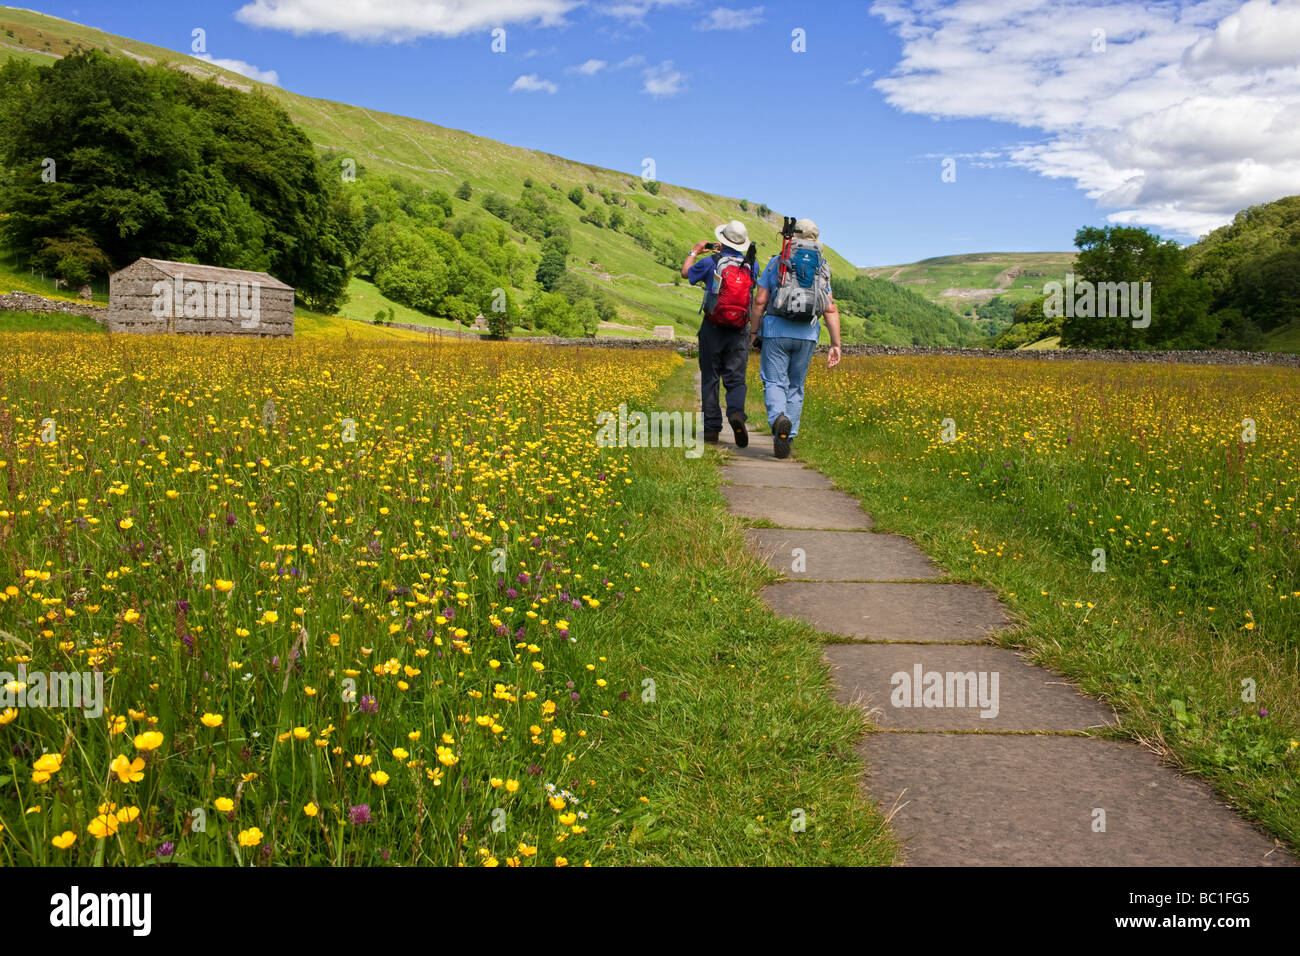 Walking through the flower filled summer hay meadows at Muker, Swaledale in the Yorkshire Dales - Stock Image